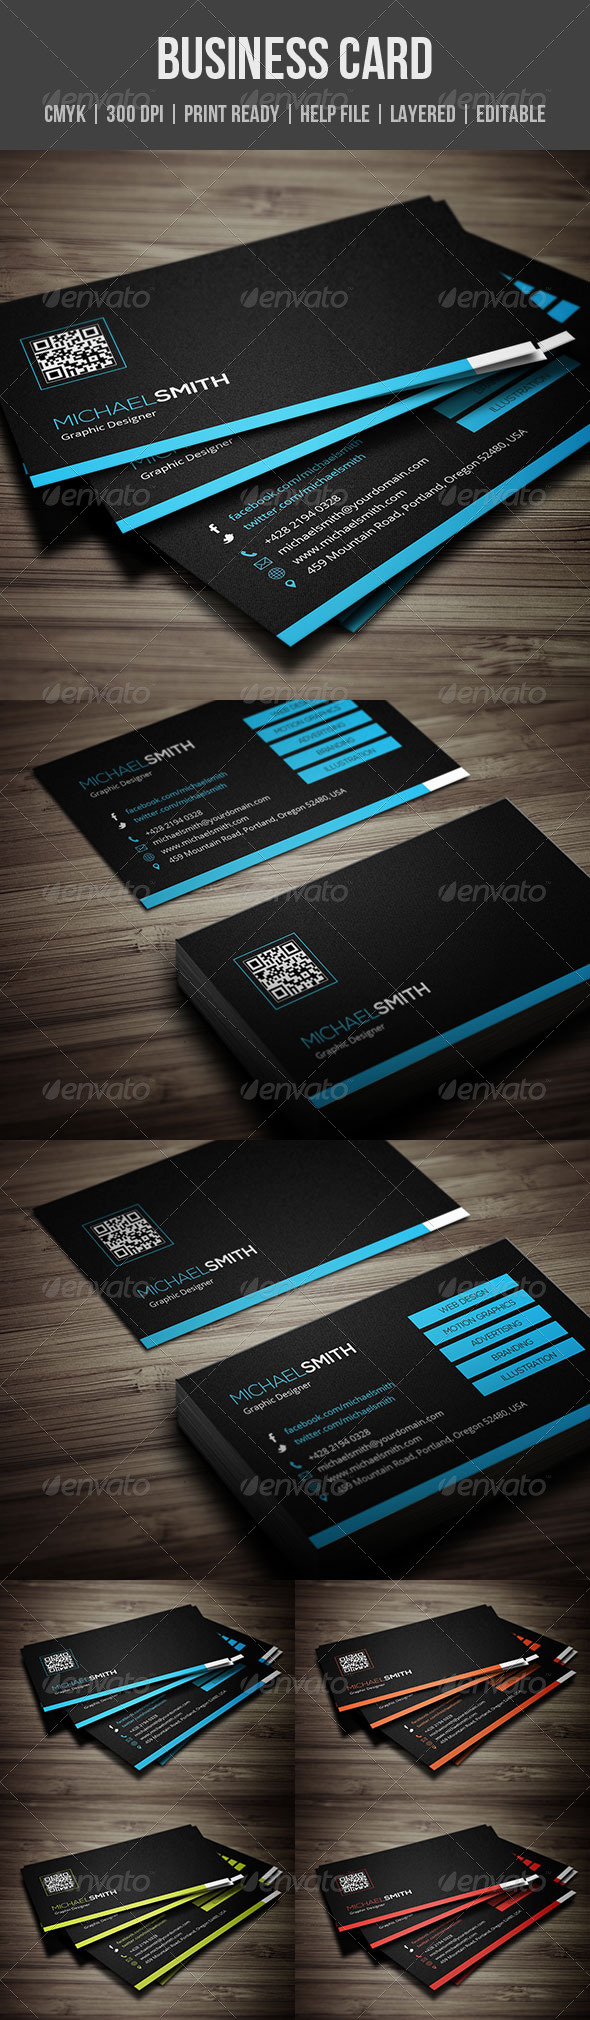 GraphicRiver Creative Business Card 5459454